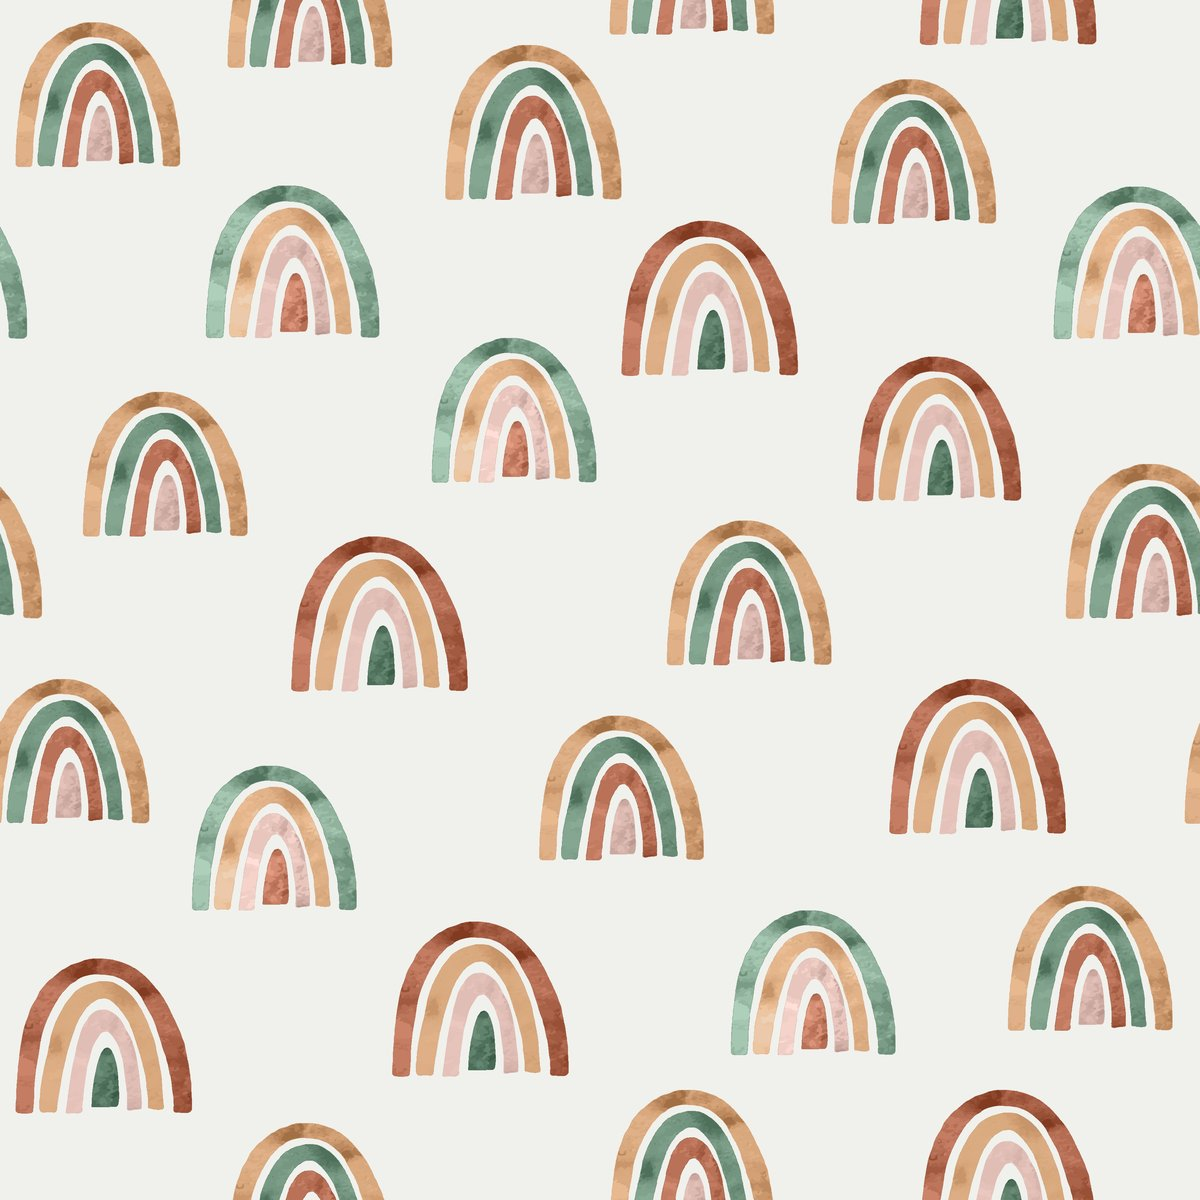 Image of Family Fabrics rainbow cotton jersey knit on a roll. Fabric has off white background and multiple multicoloured rainbows painted in a watercolour style.